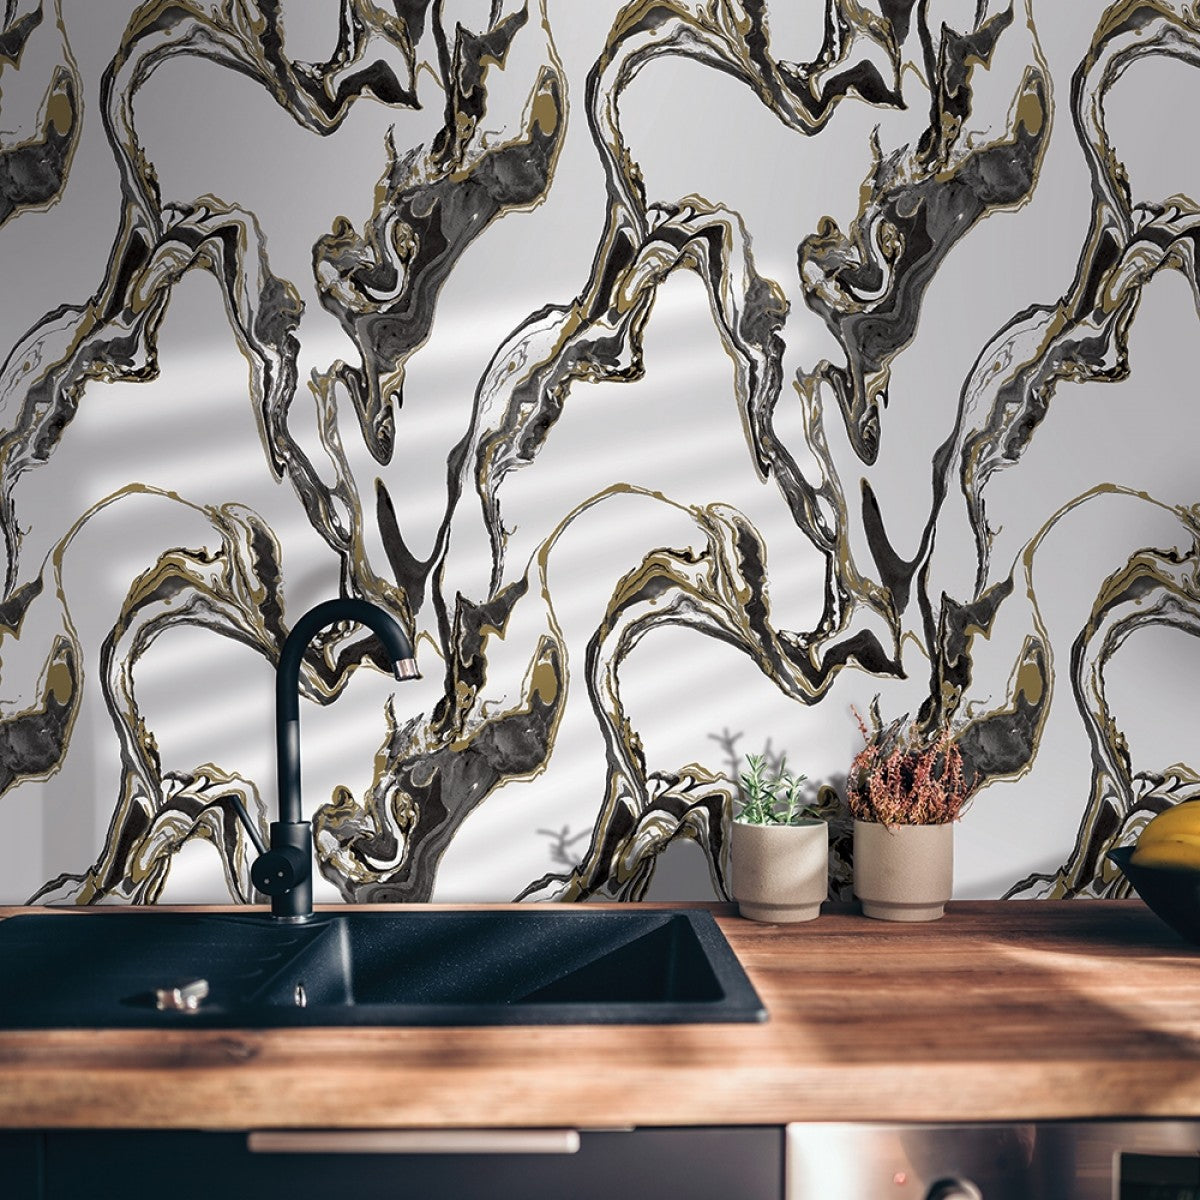 Marble Self Adhesive Wallpaper In Onyx Design By Tempaper